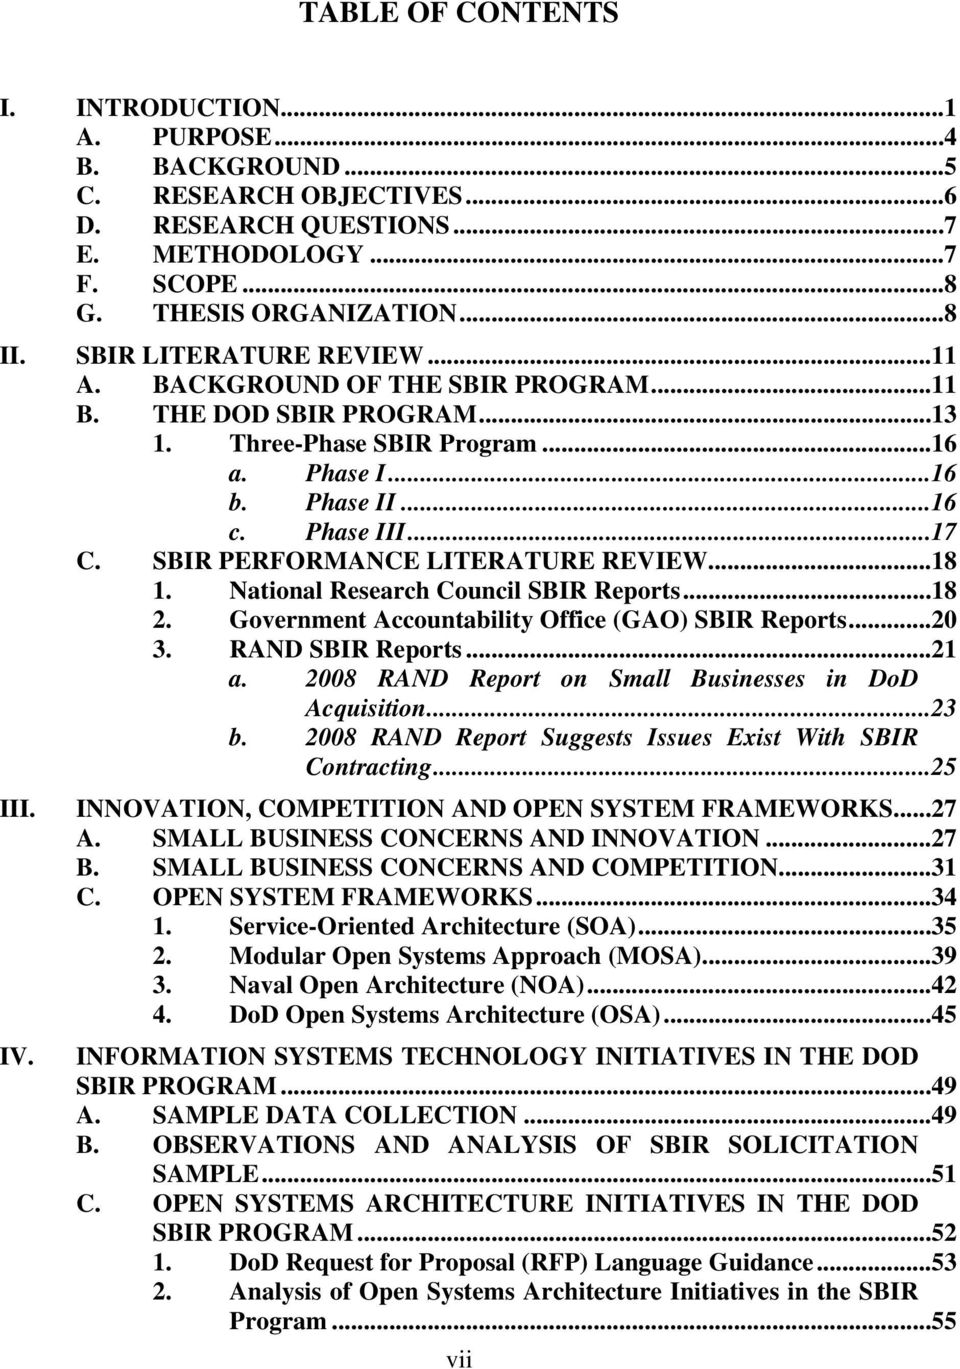 SBIR PERFORMANCE LITERATURE REVIEW...18 1. National Research Council SBIR Reports...18 2. Government Accountability Office (GAO) SBIR Reports...20 3. RAND SBIR Reports...21 a.